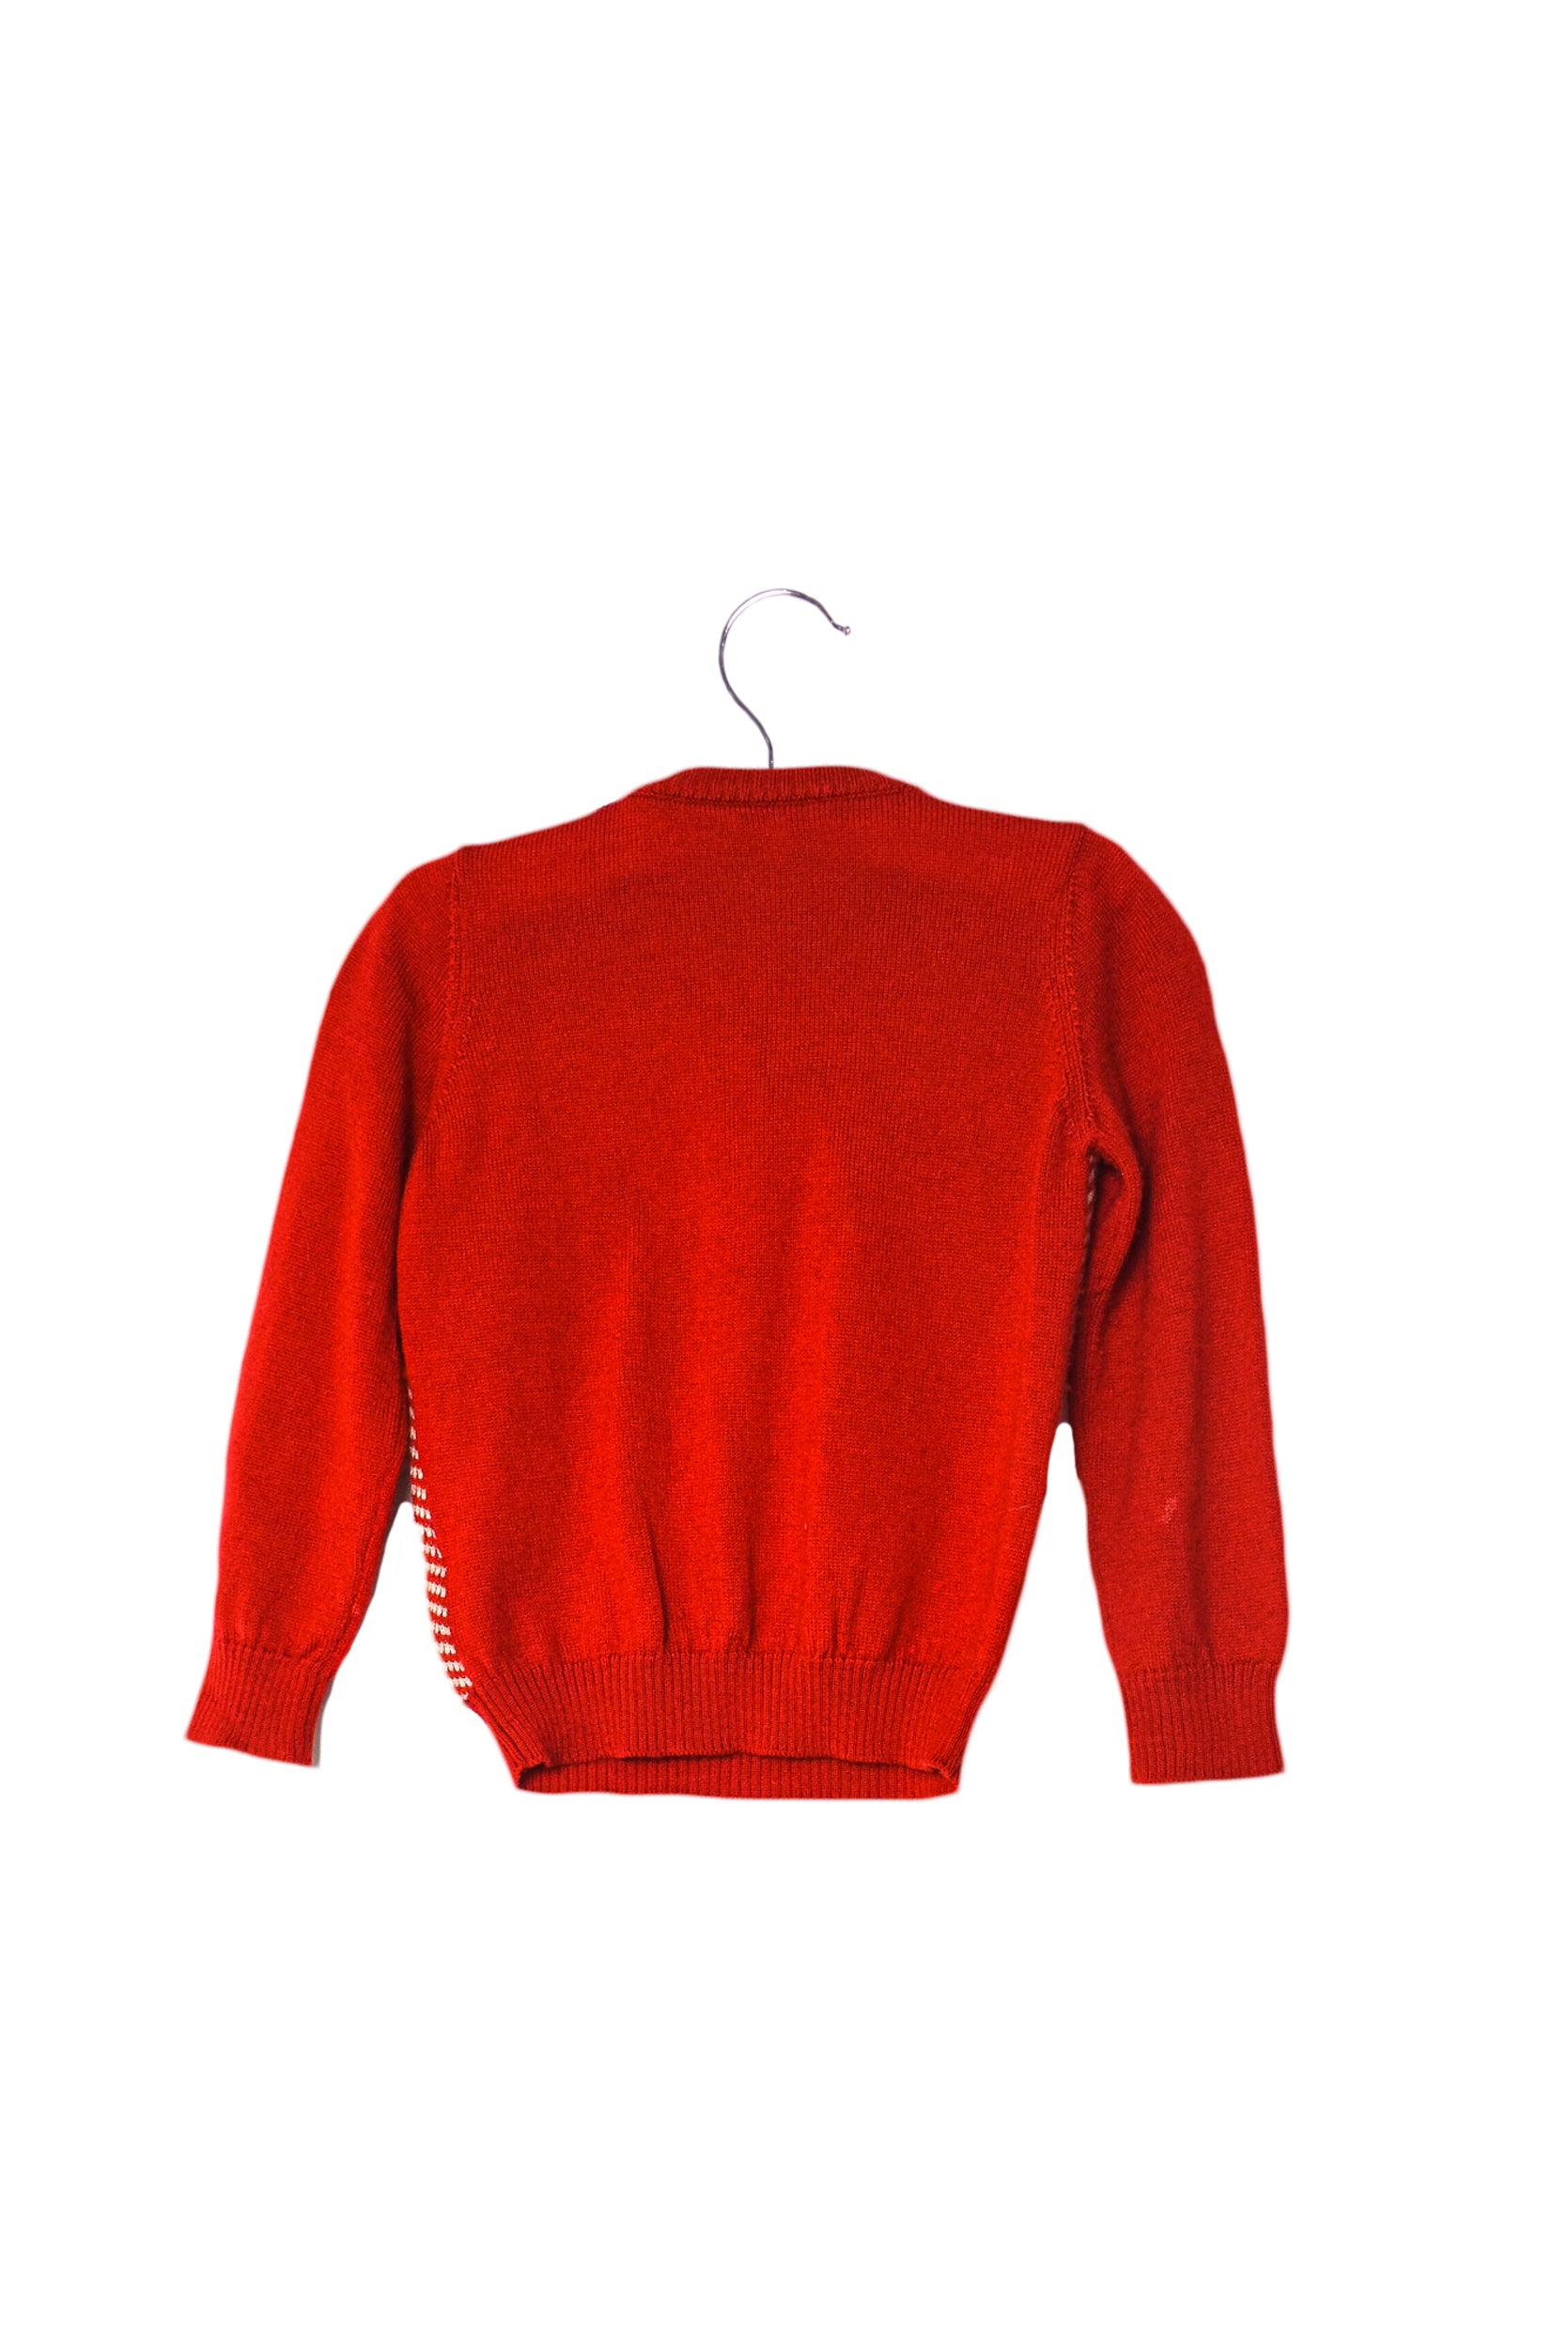 Knit Sweater 12-18M at Retykle